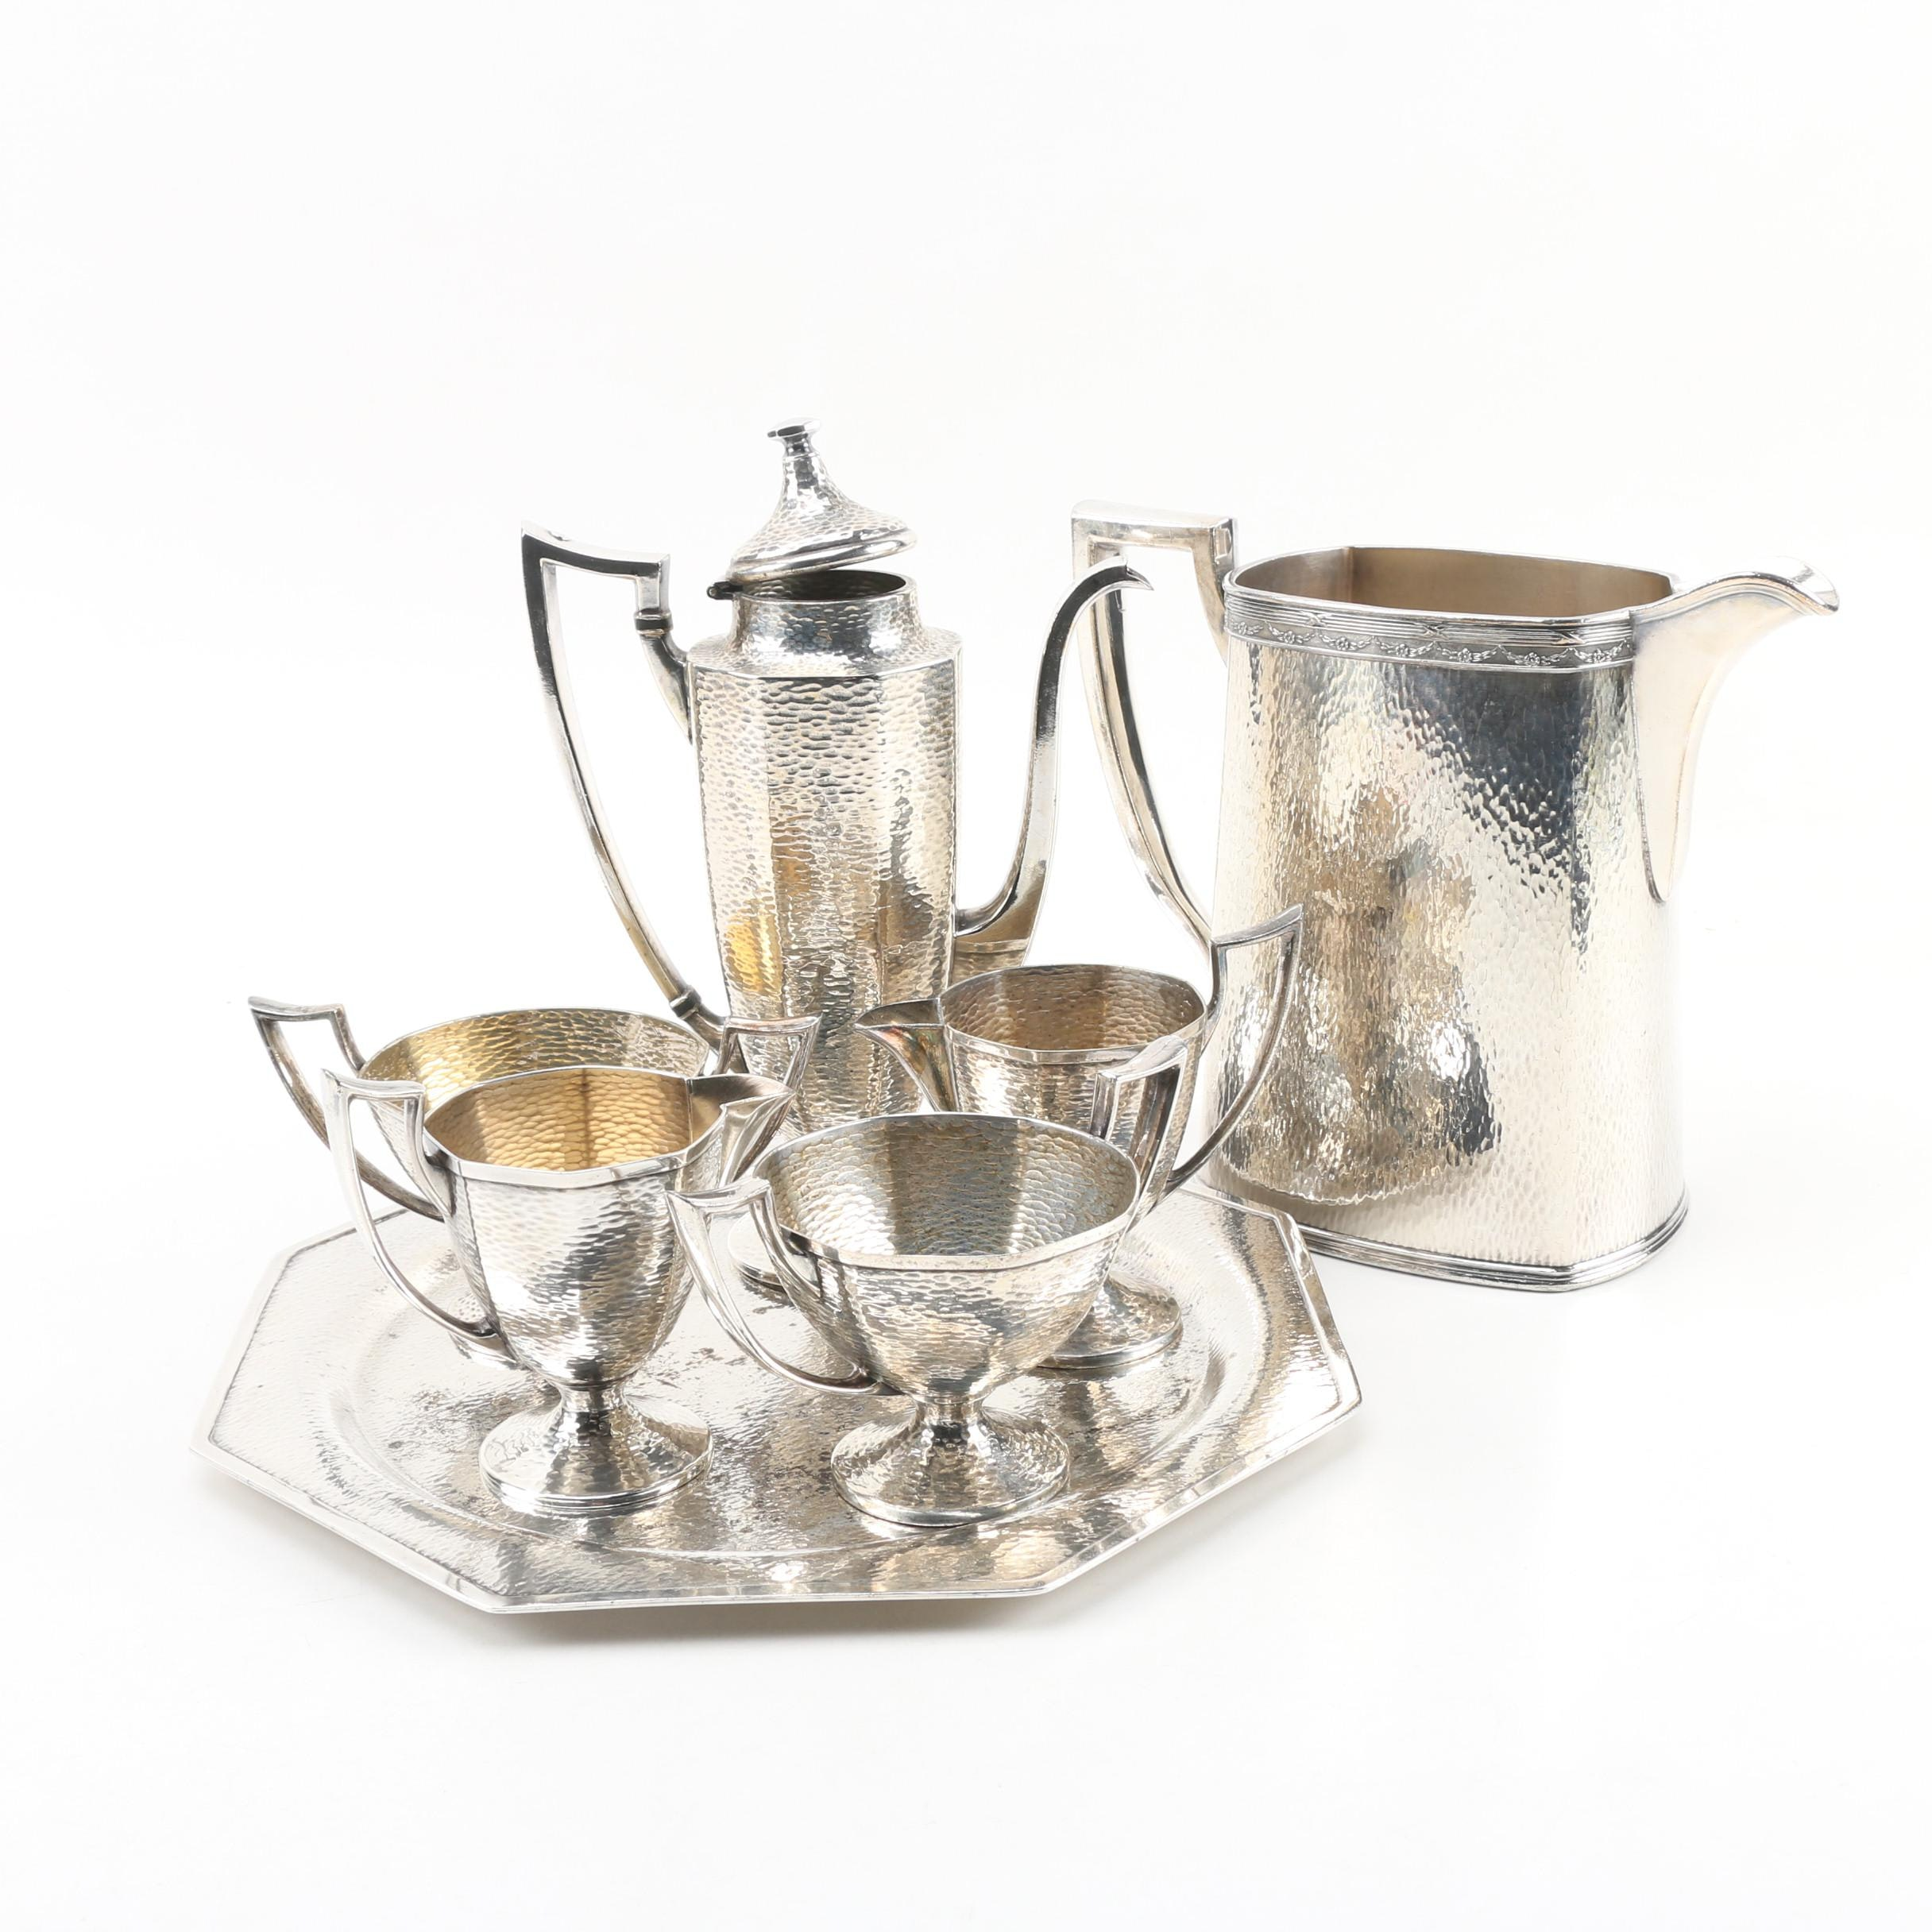 Homan Silver Plate on Nickel and Hammered Tea Set with Tray, c.1930s